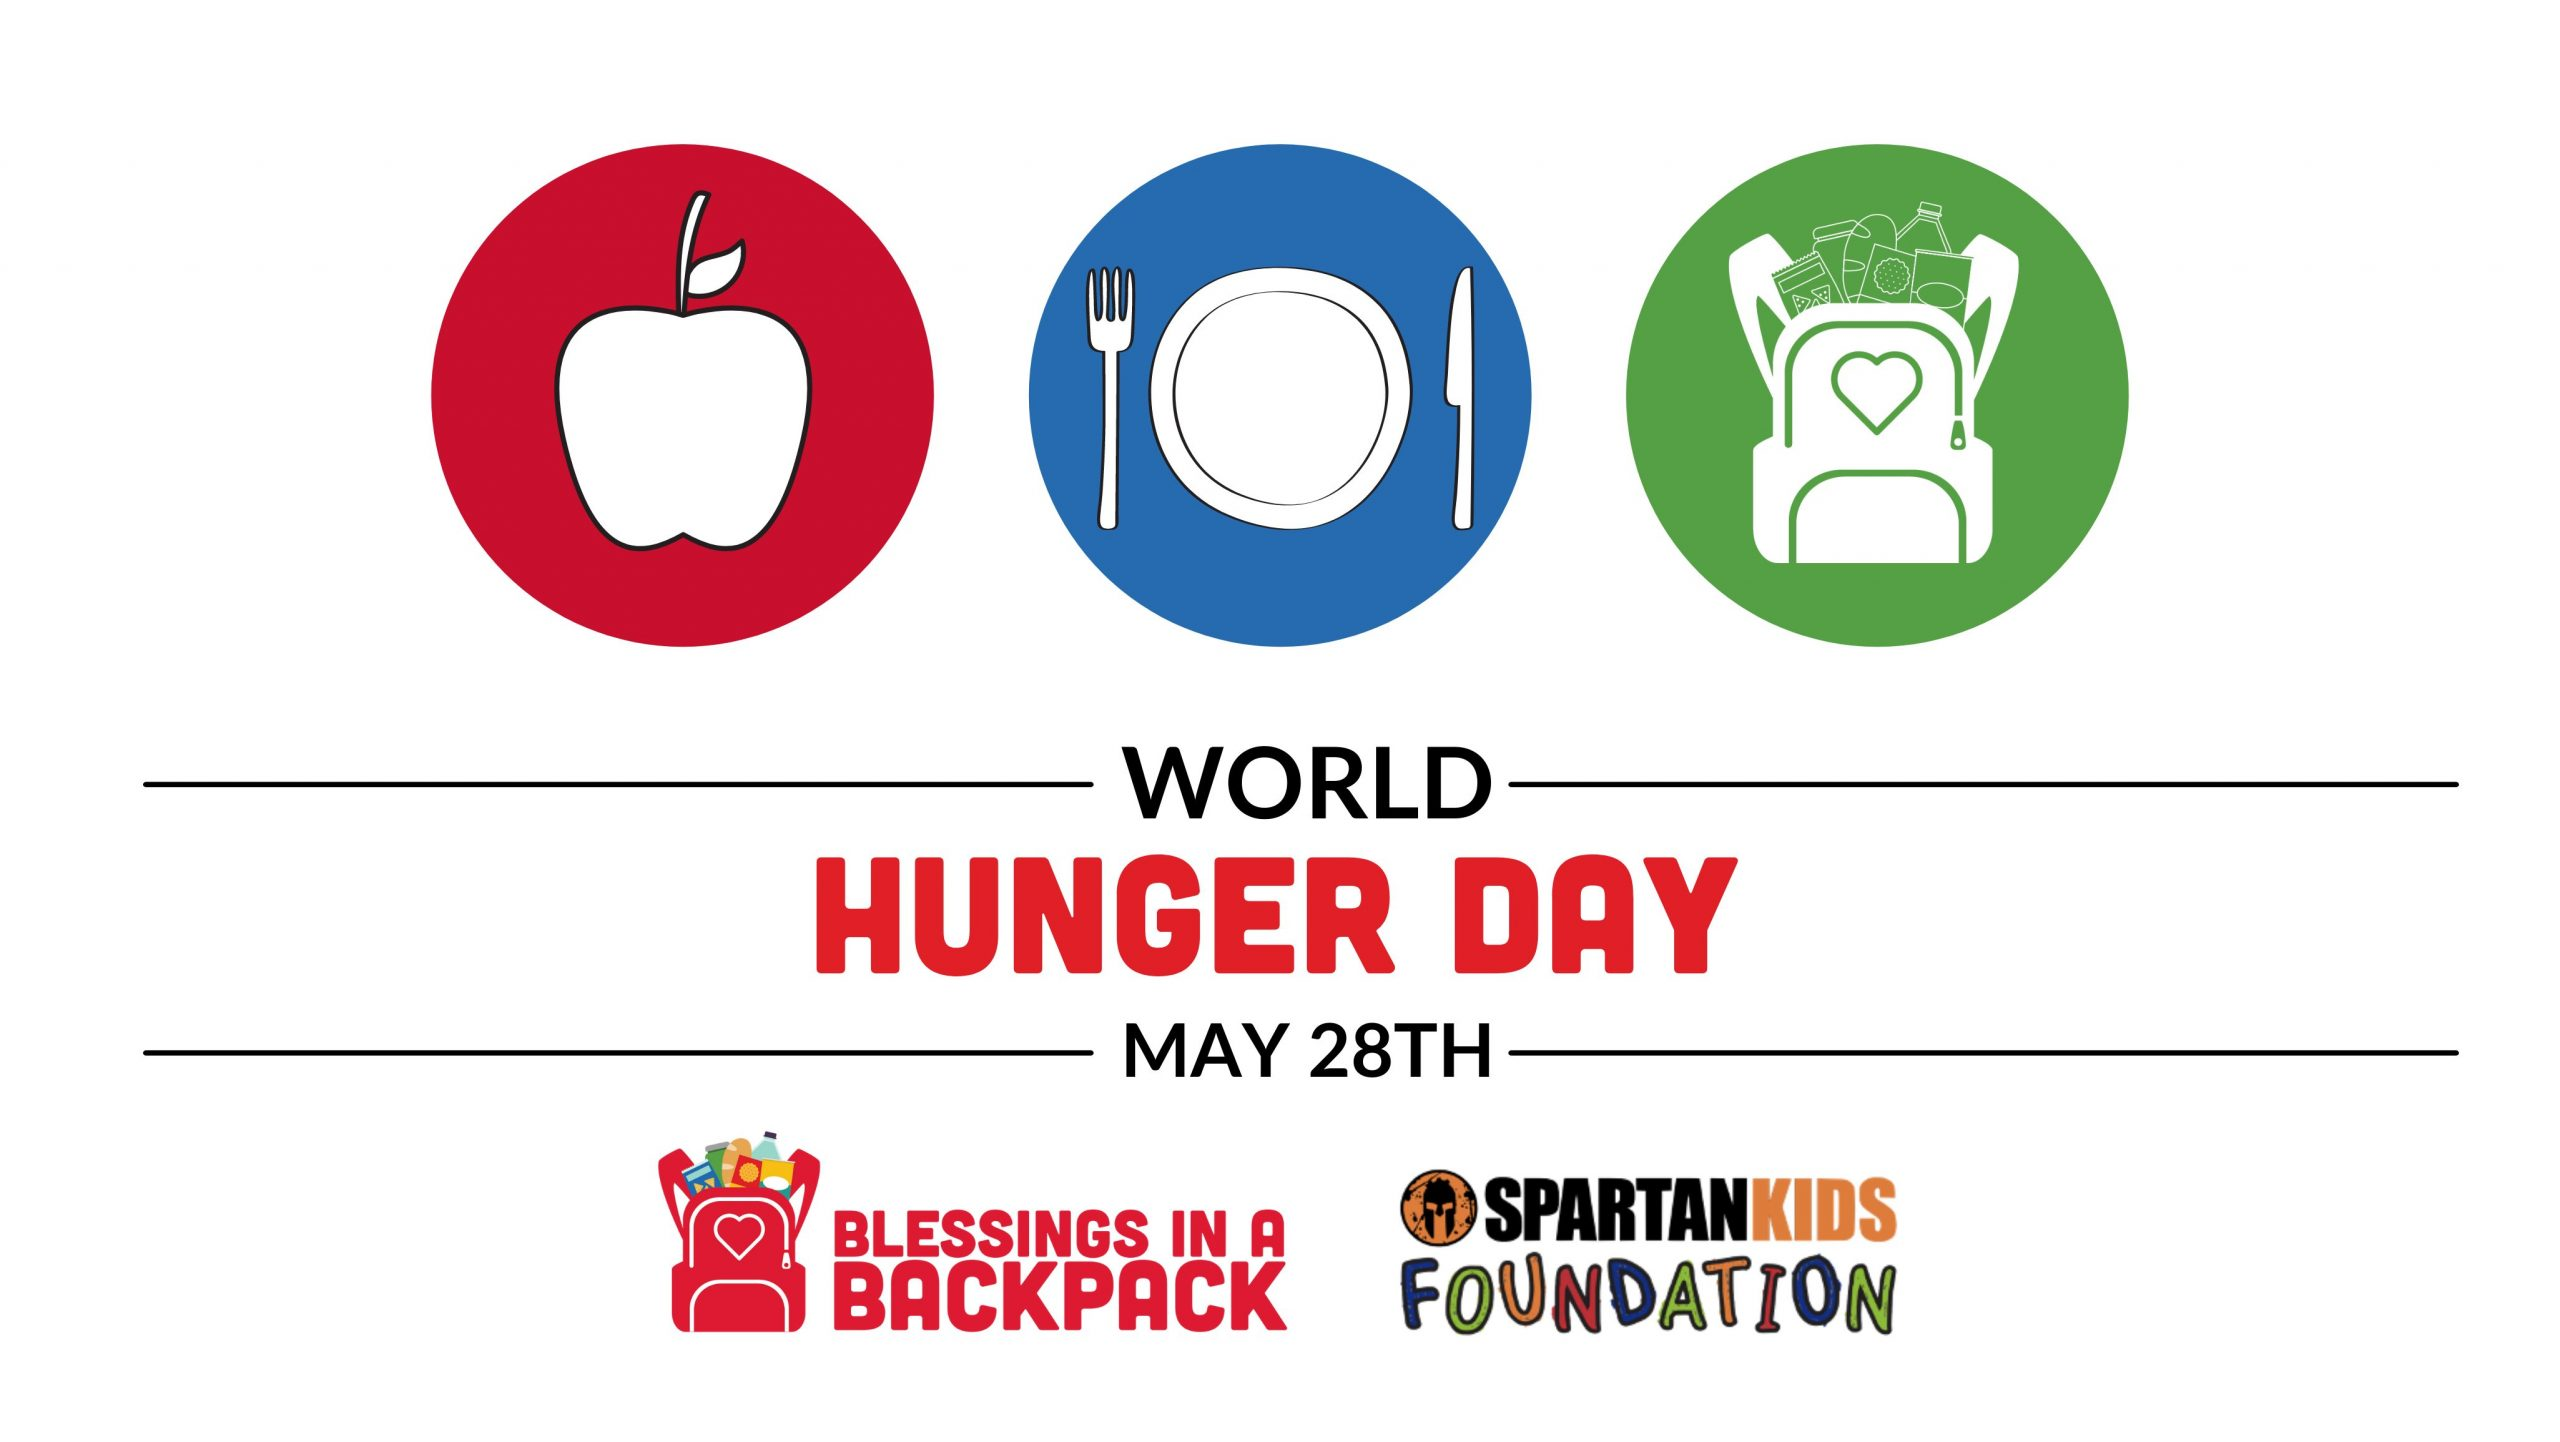 Spartan Kids Foundation Matching $3,000 in Blessings Chicago Donations on World Hunger Day